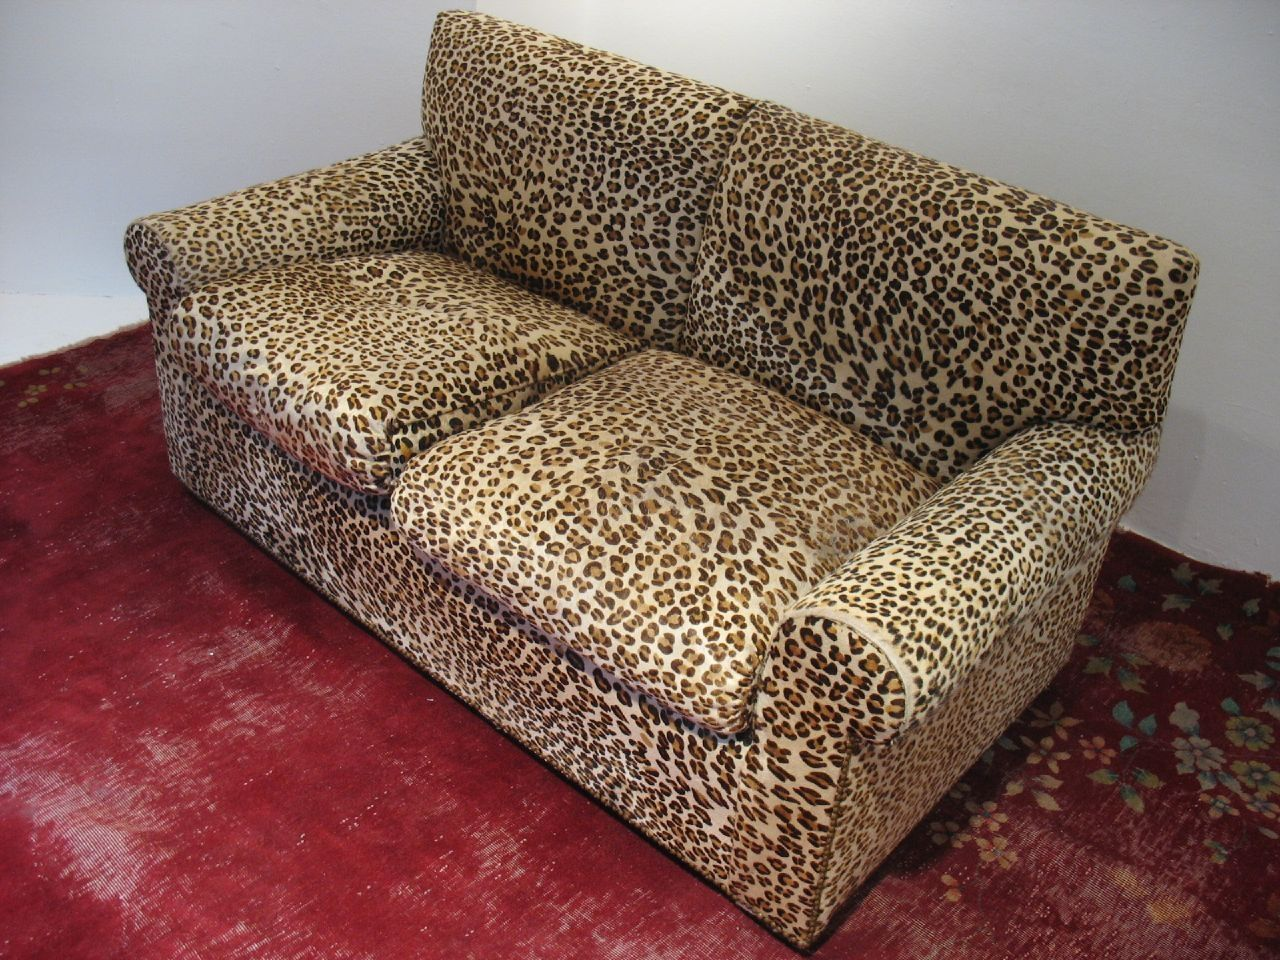 Animal Print Couch Covers Printed Sofa Sofa Covers Couch Covers